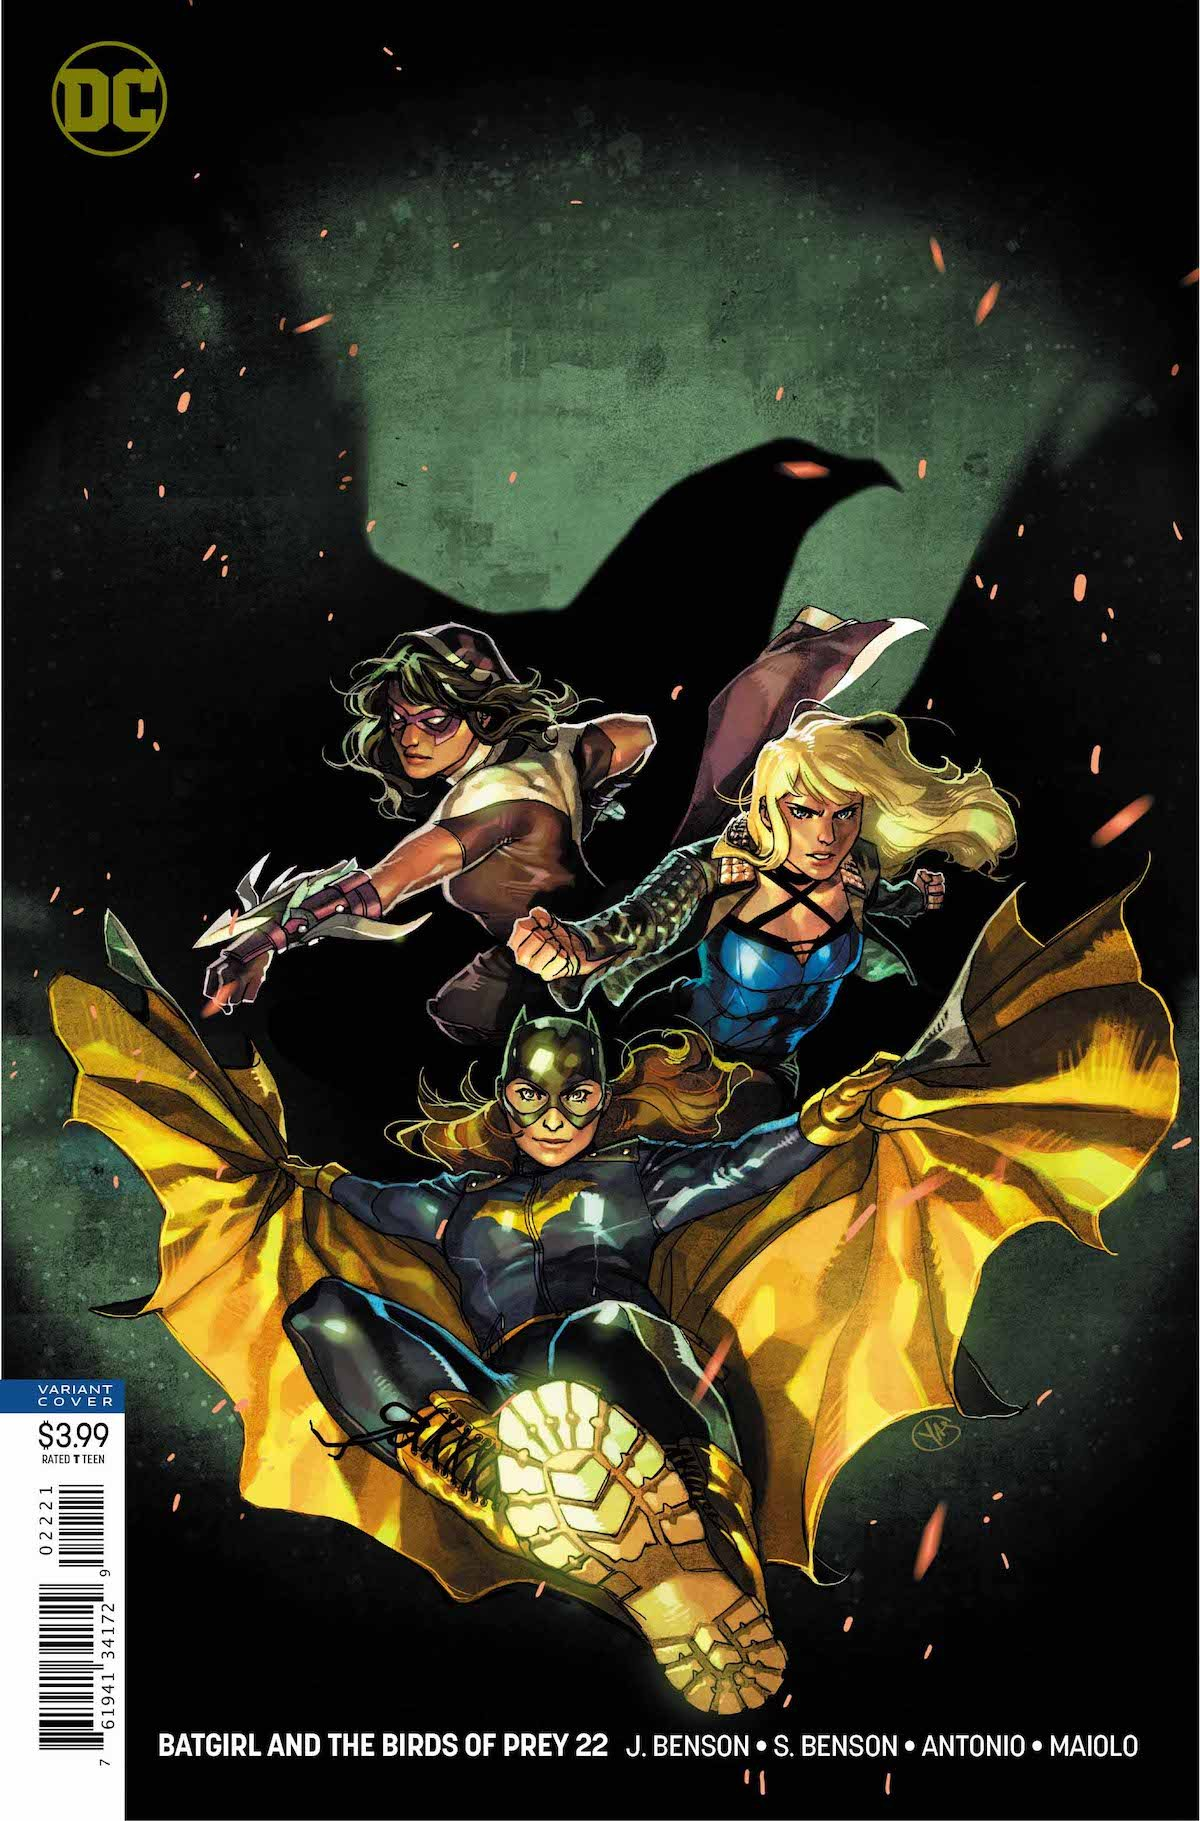 Batgirl and the Birds of Prey #22 variant cover